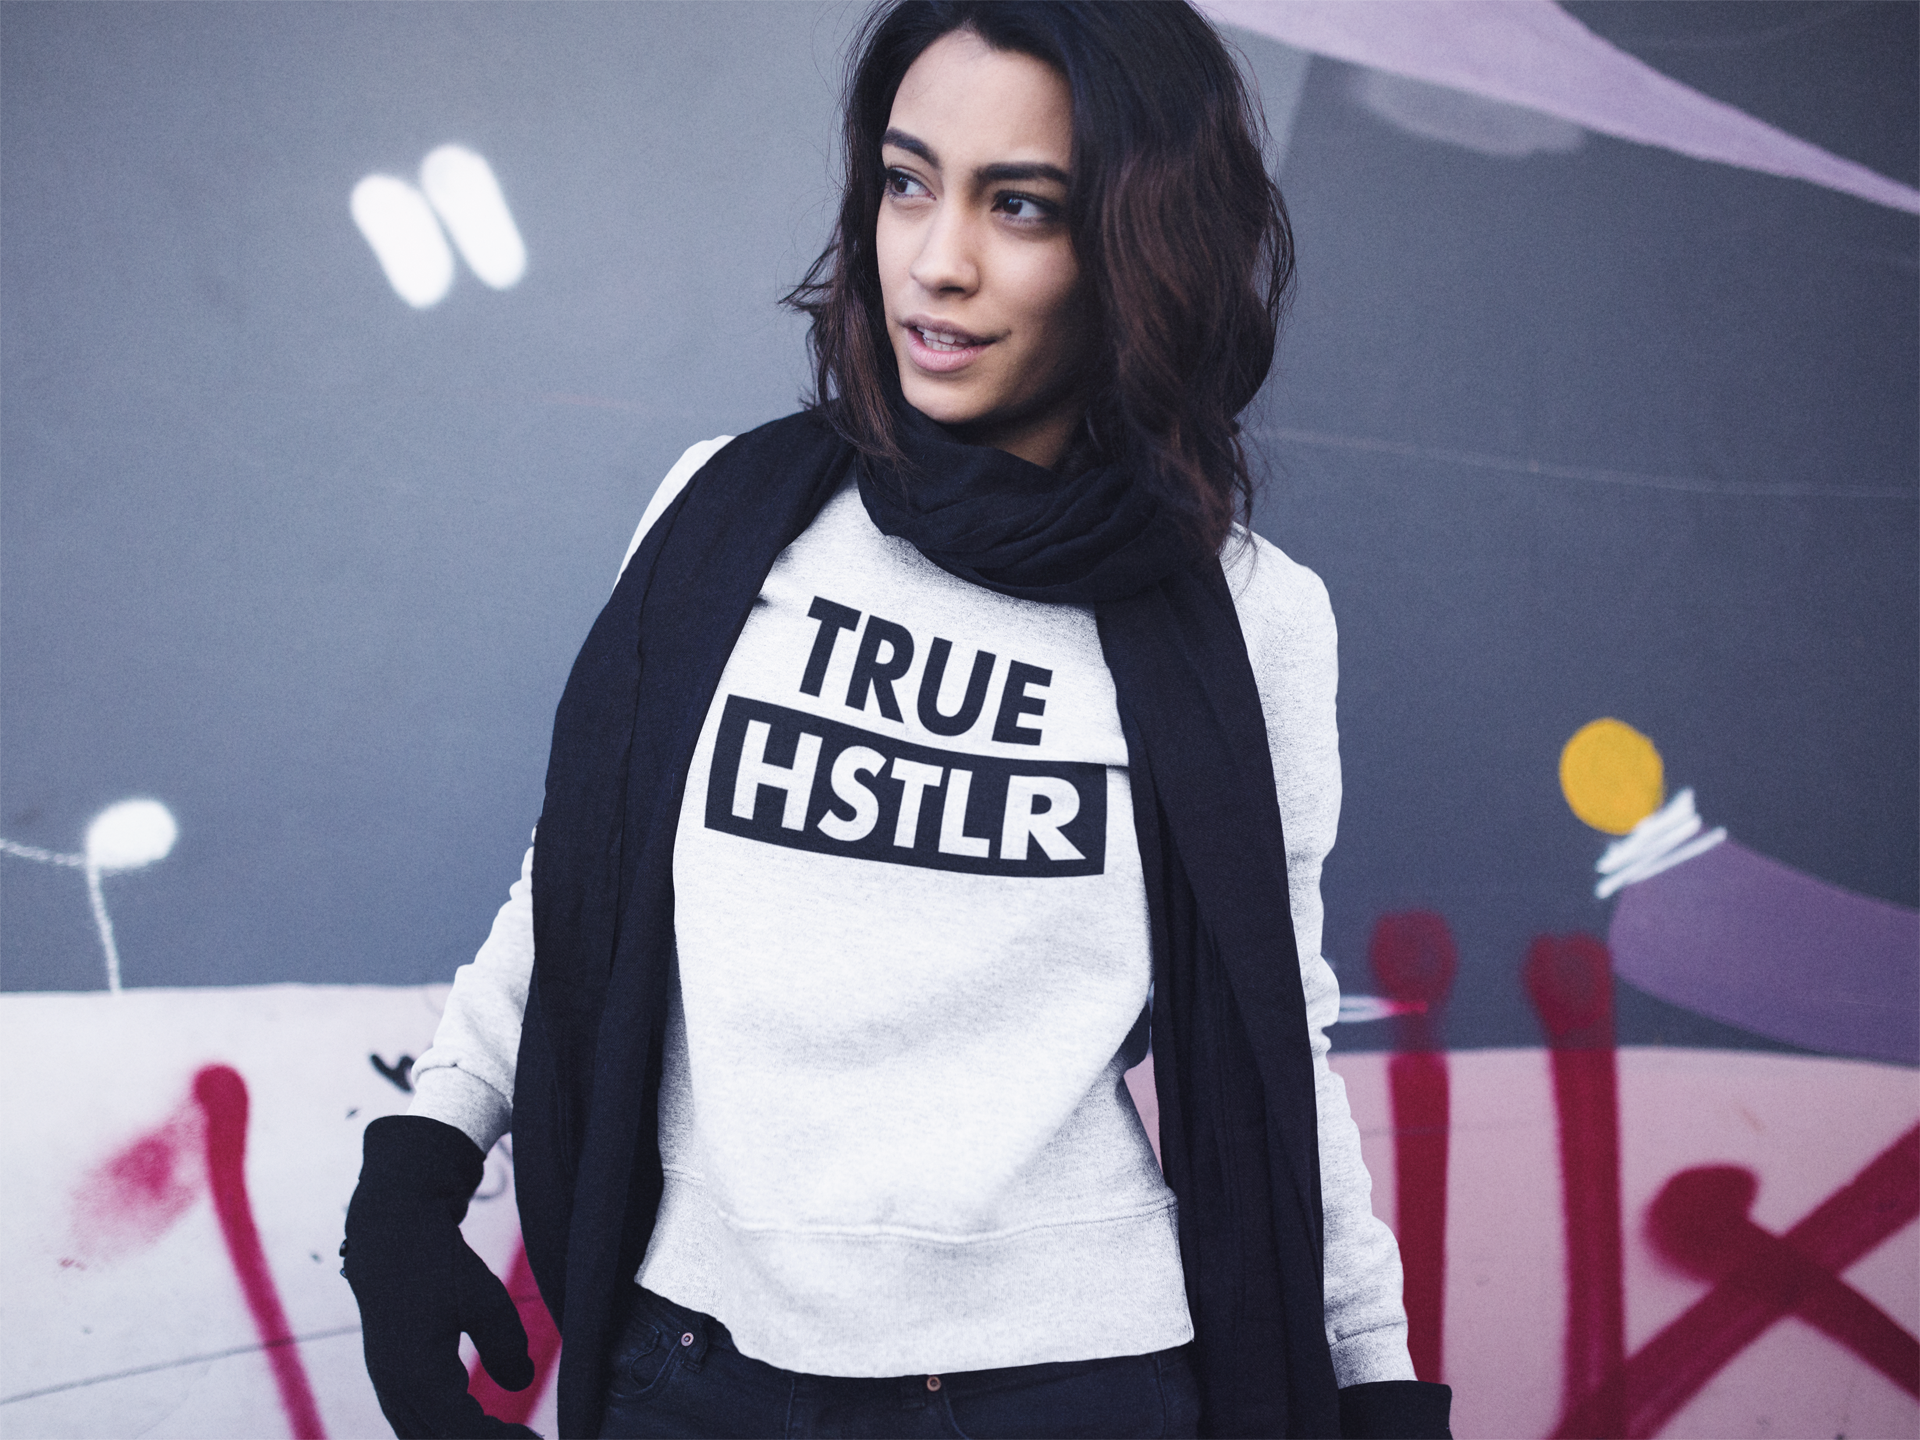 3b62cf5e9 True Hustlr Sweatshirt White - HSTLR® Wear